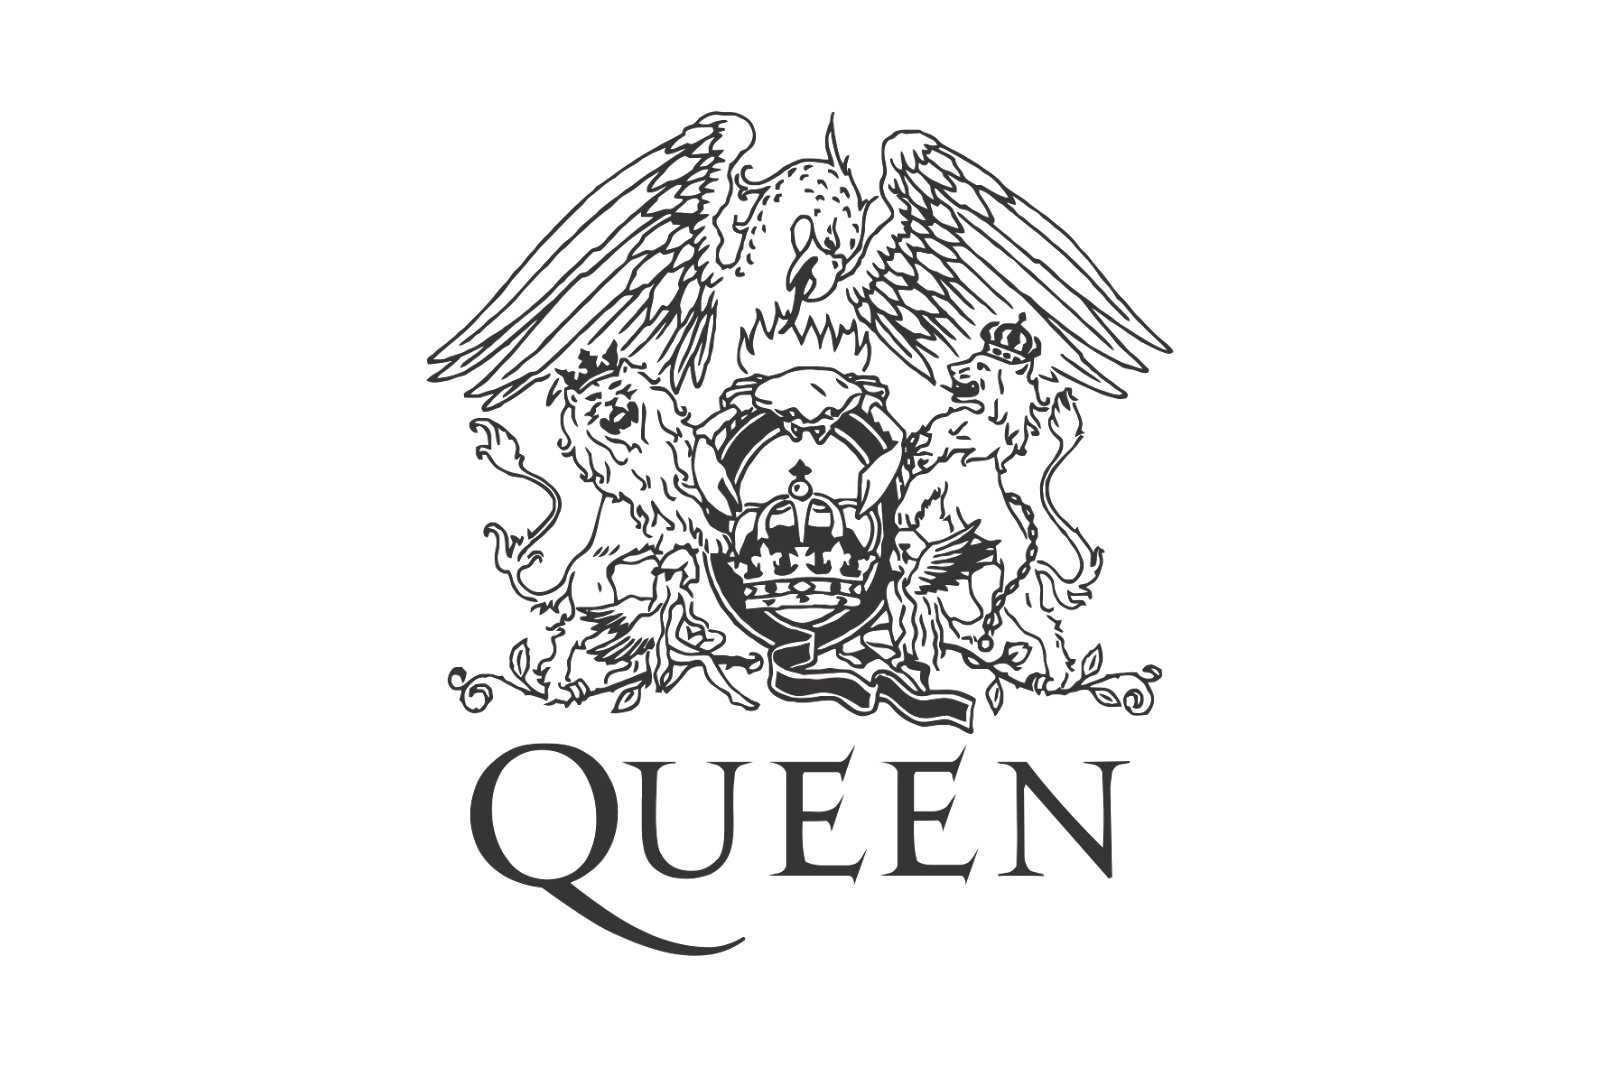 Queen logo gallery h. Crown temple clipart text